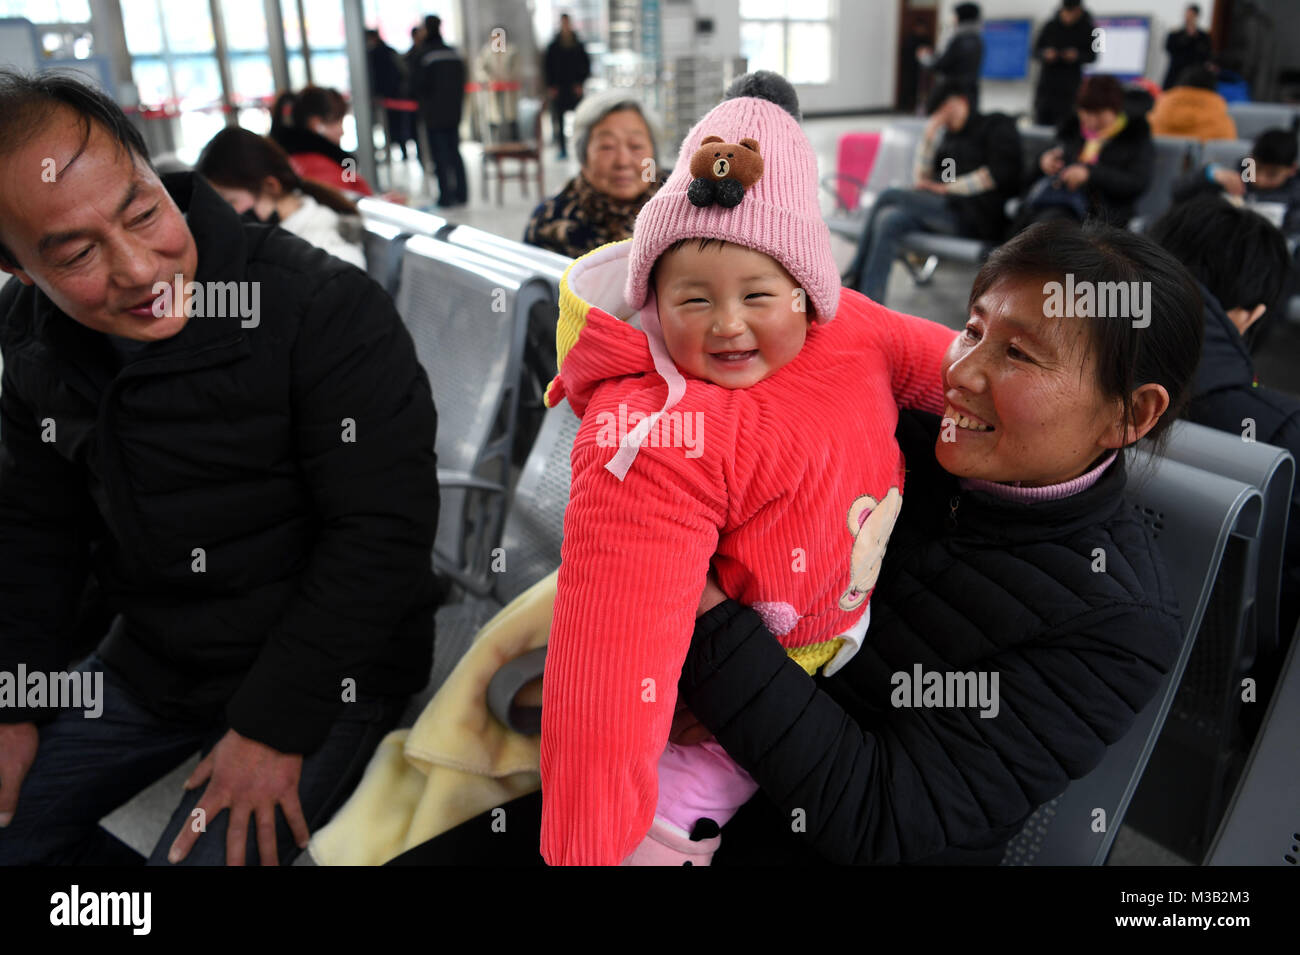 Yingshang. 10th Feb, 2018. Nine-month-old Chang Liuyi are held by her grandparents to take a train to Changzhou - Stock Image